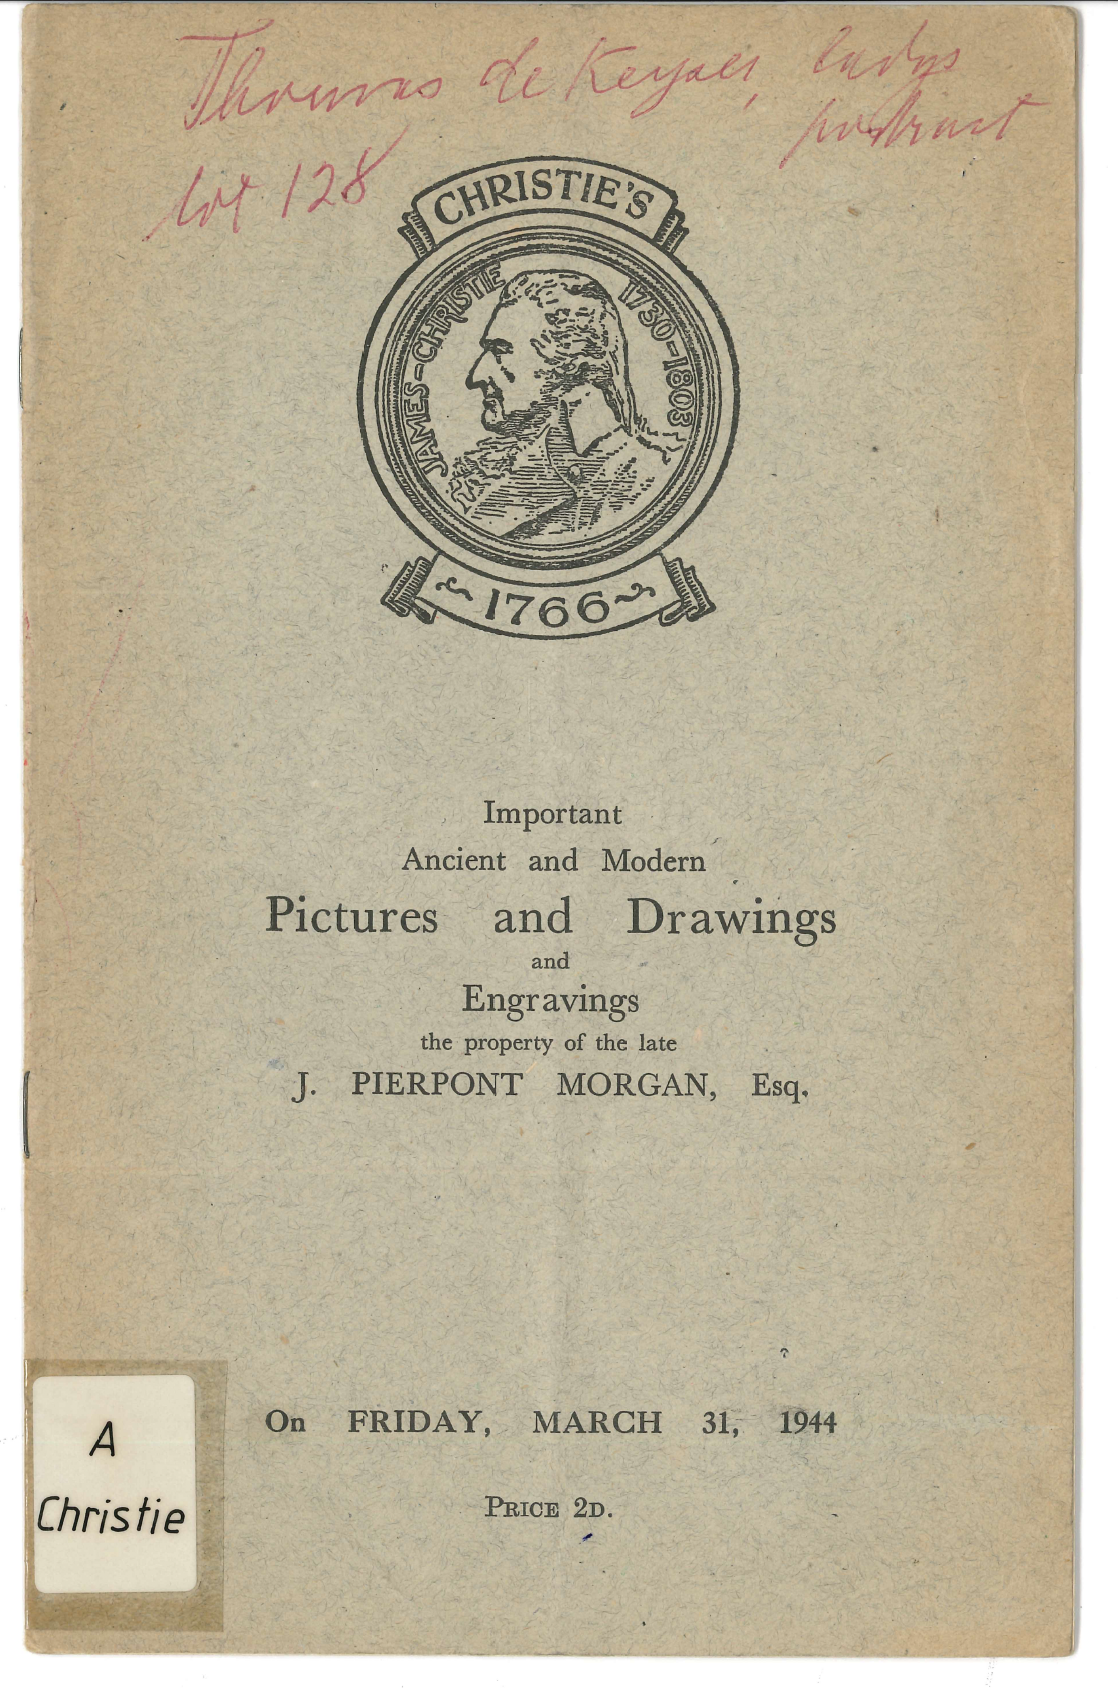 Frontseite des Important Ancient and modern Pictures and Drawings and Engravings the property of the late J. Piermont Morgan, Esq.